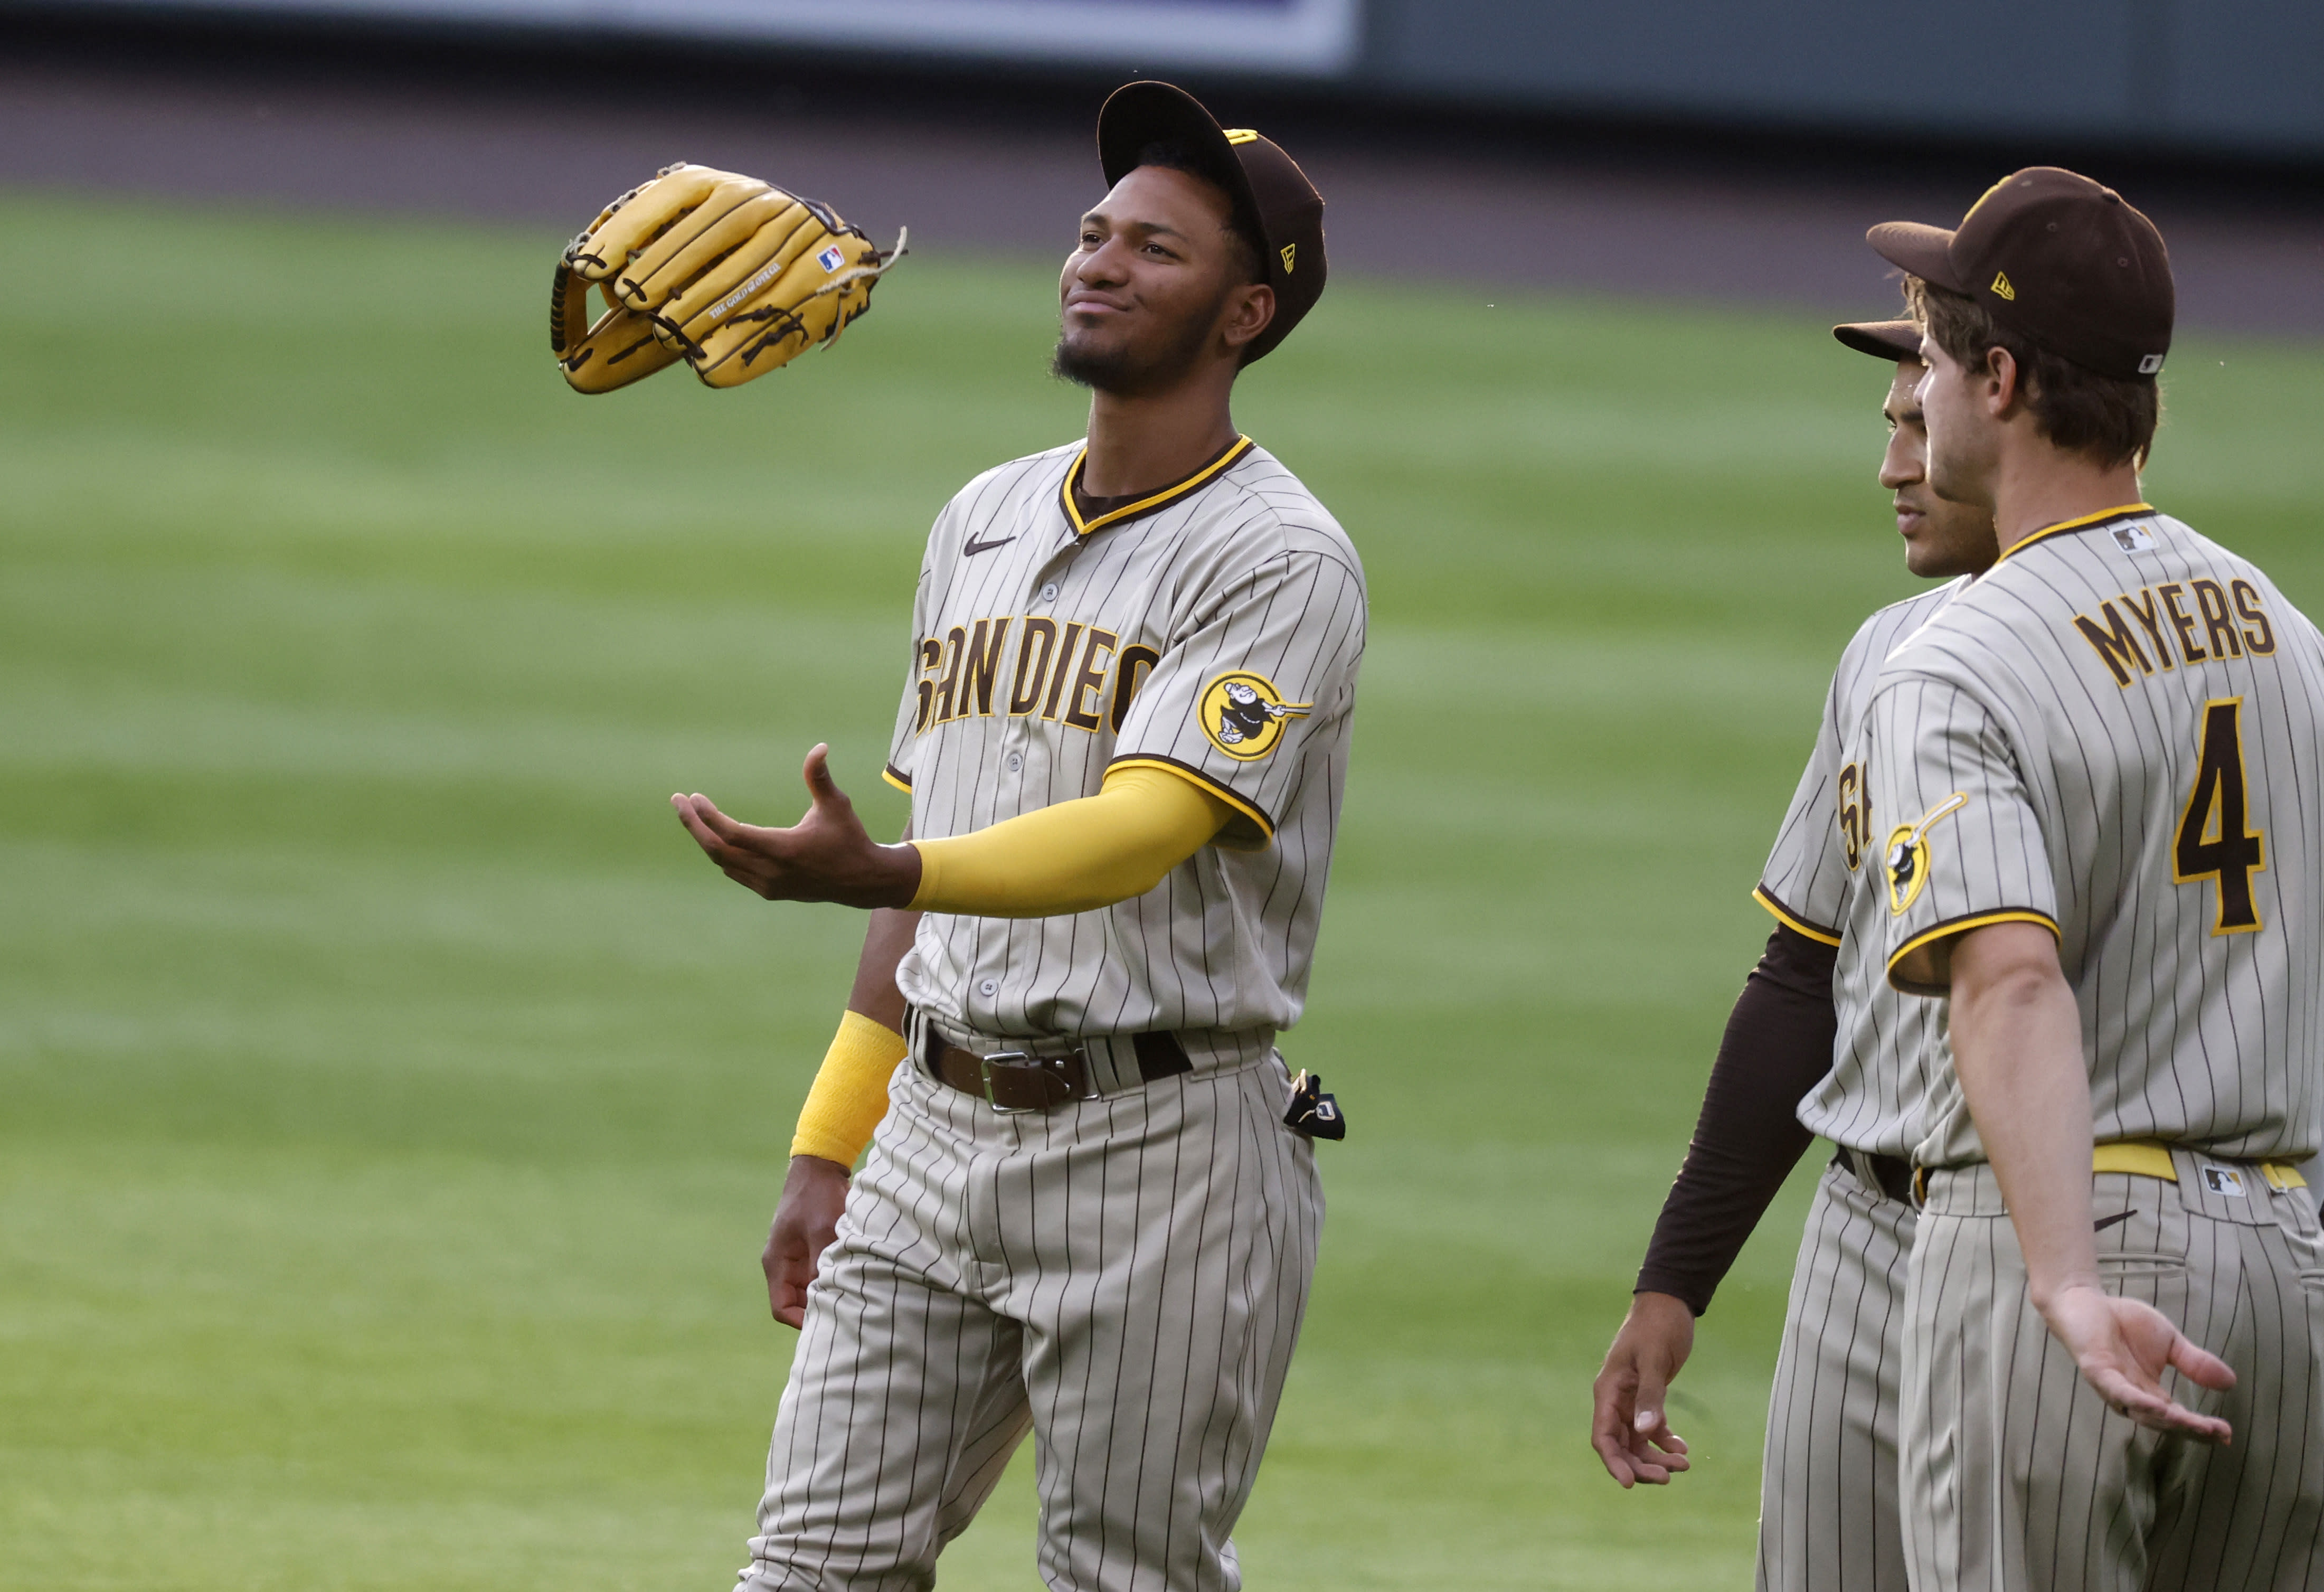 San Diego Padres left fielder Edward Olivares, left, tosses his glove in the air while chatting with center fielder Trent Grisham, center, and San Diego Padres right fielder Wil Myers during a pitching change in the second inning of a baseball game against the Colorado Rockies on Saturday, Aug. 1, 2020, in Denver. (AP Photo/David Zalubowski)